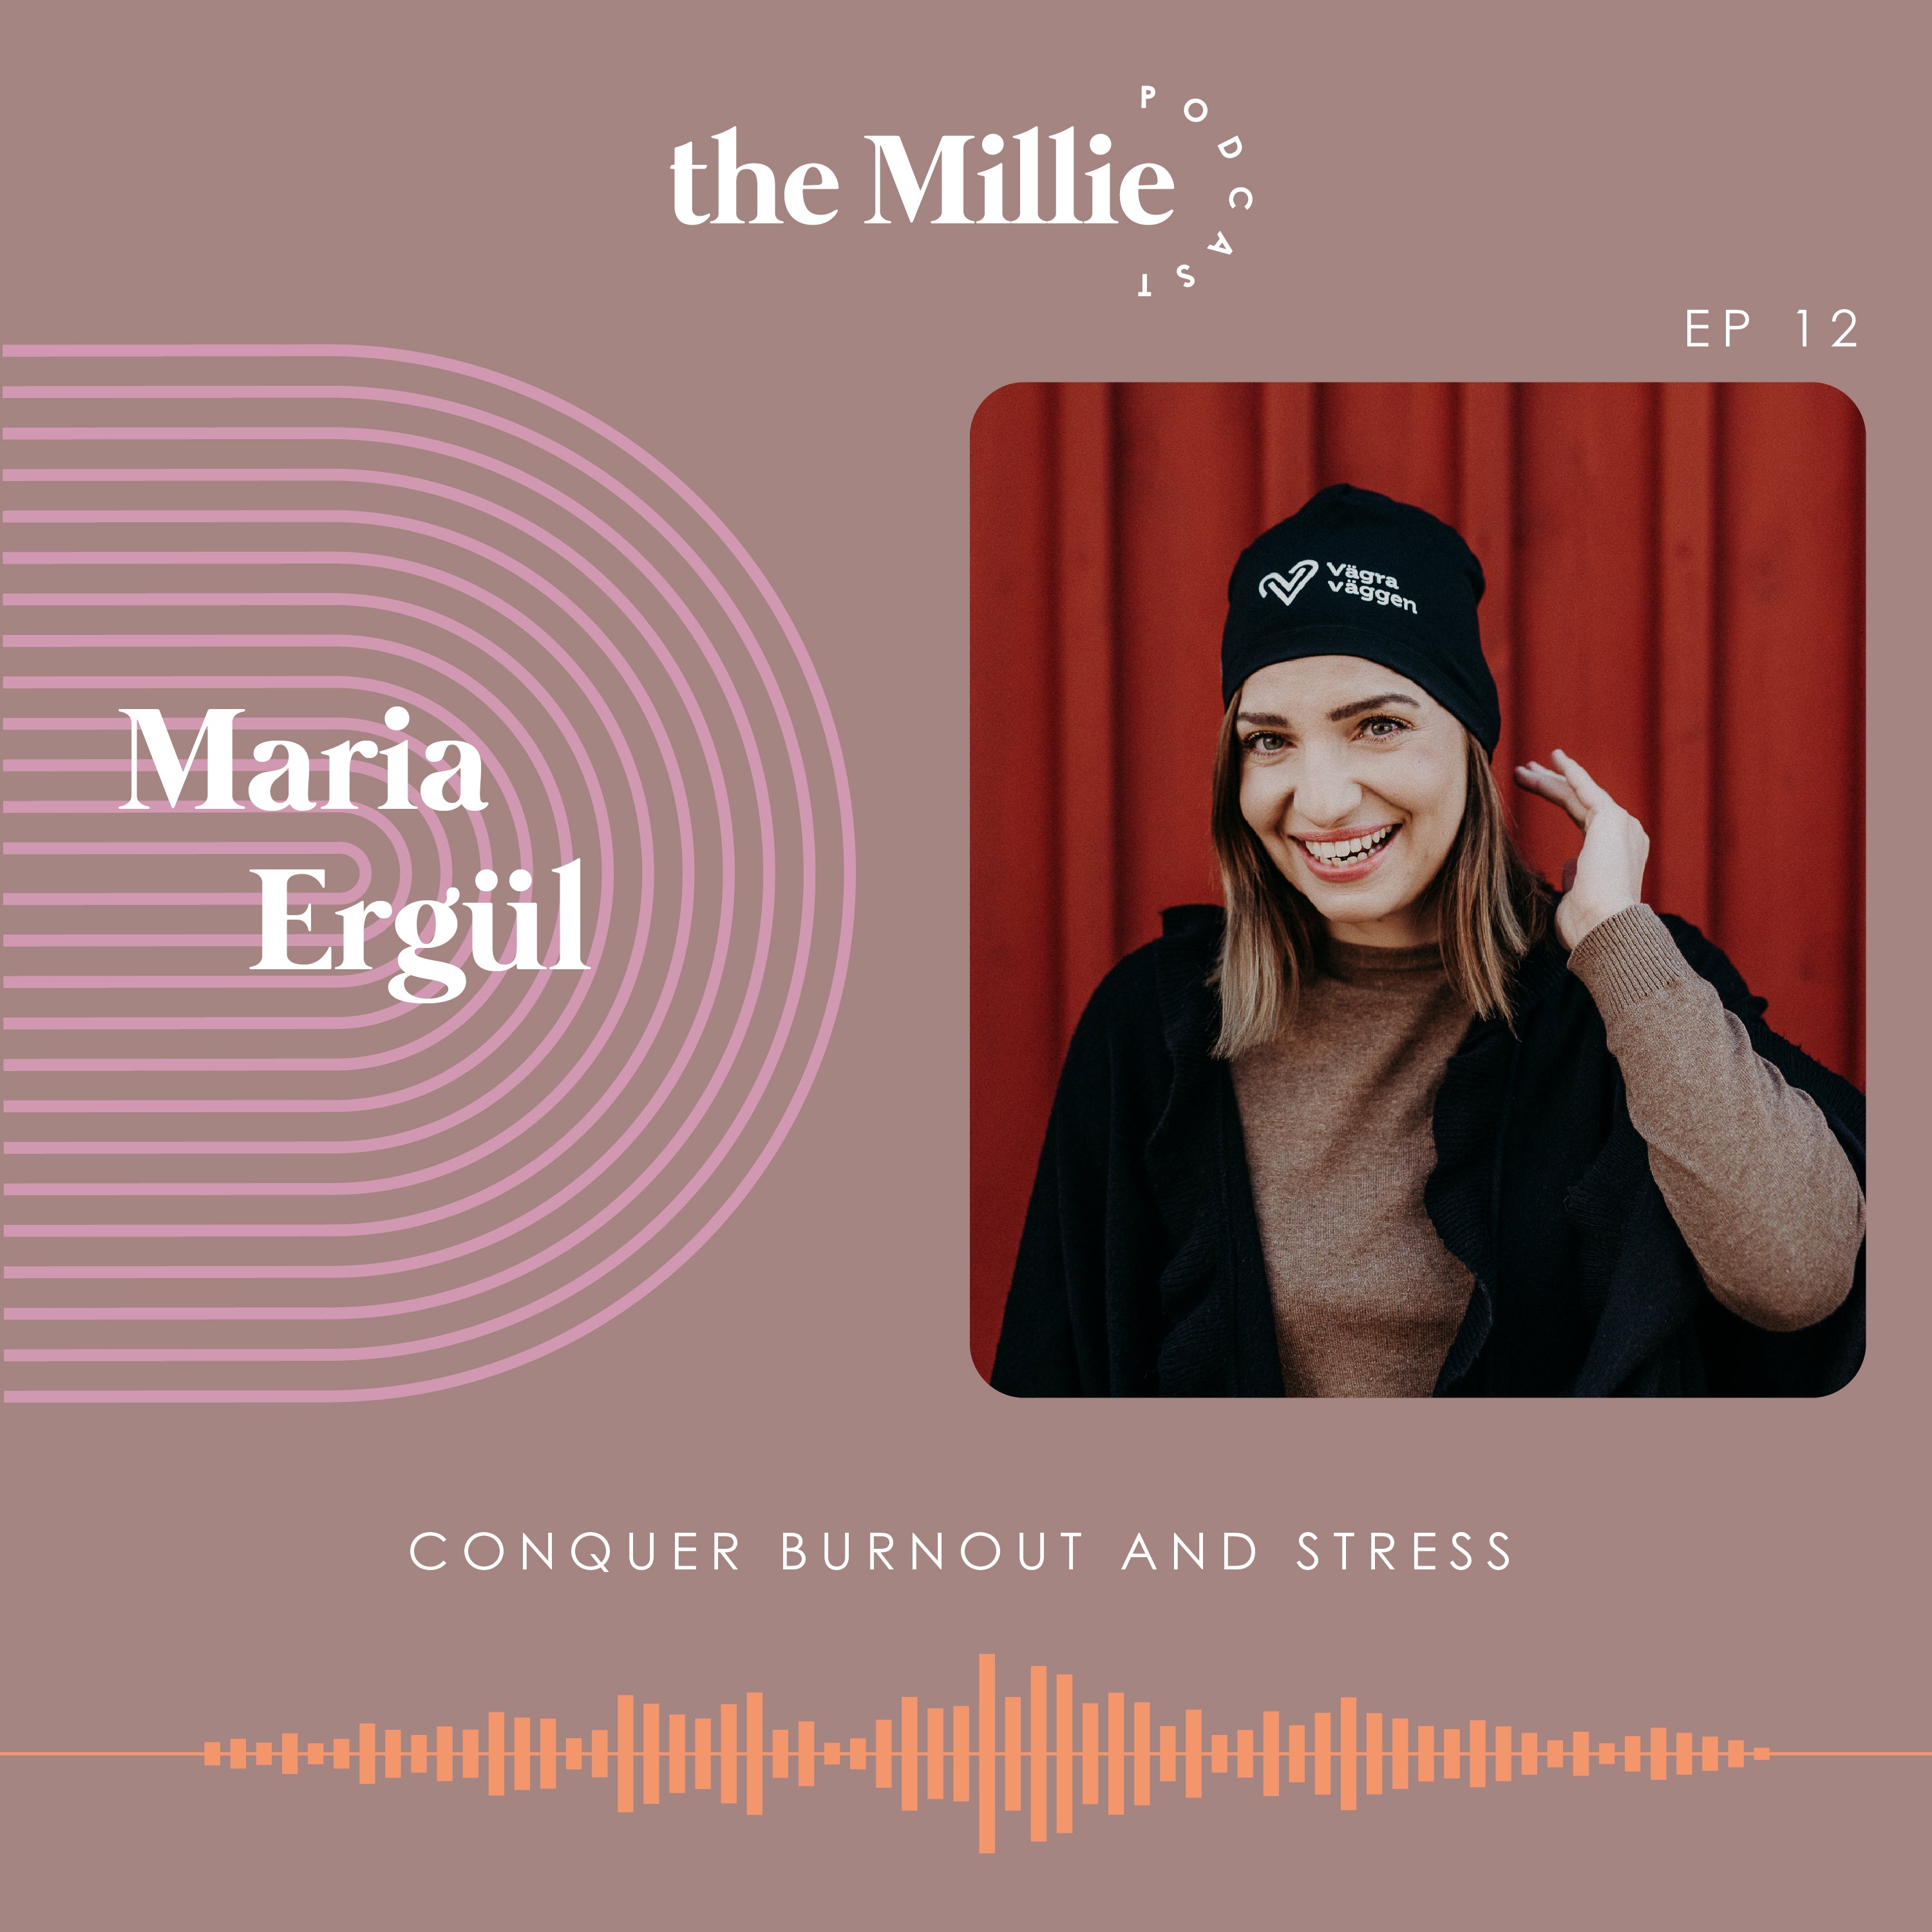 The 'How-to' with Maria Ergül: How to Conquer Burnout and Stress